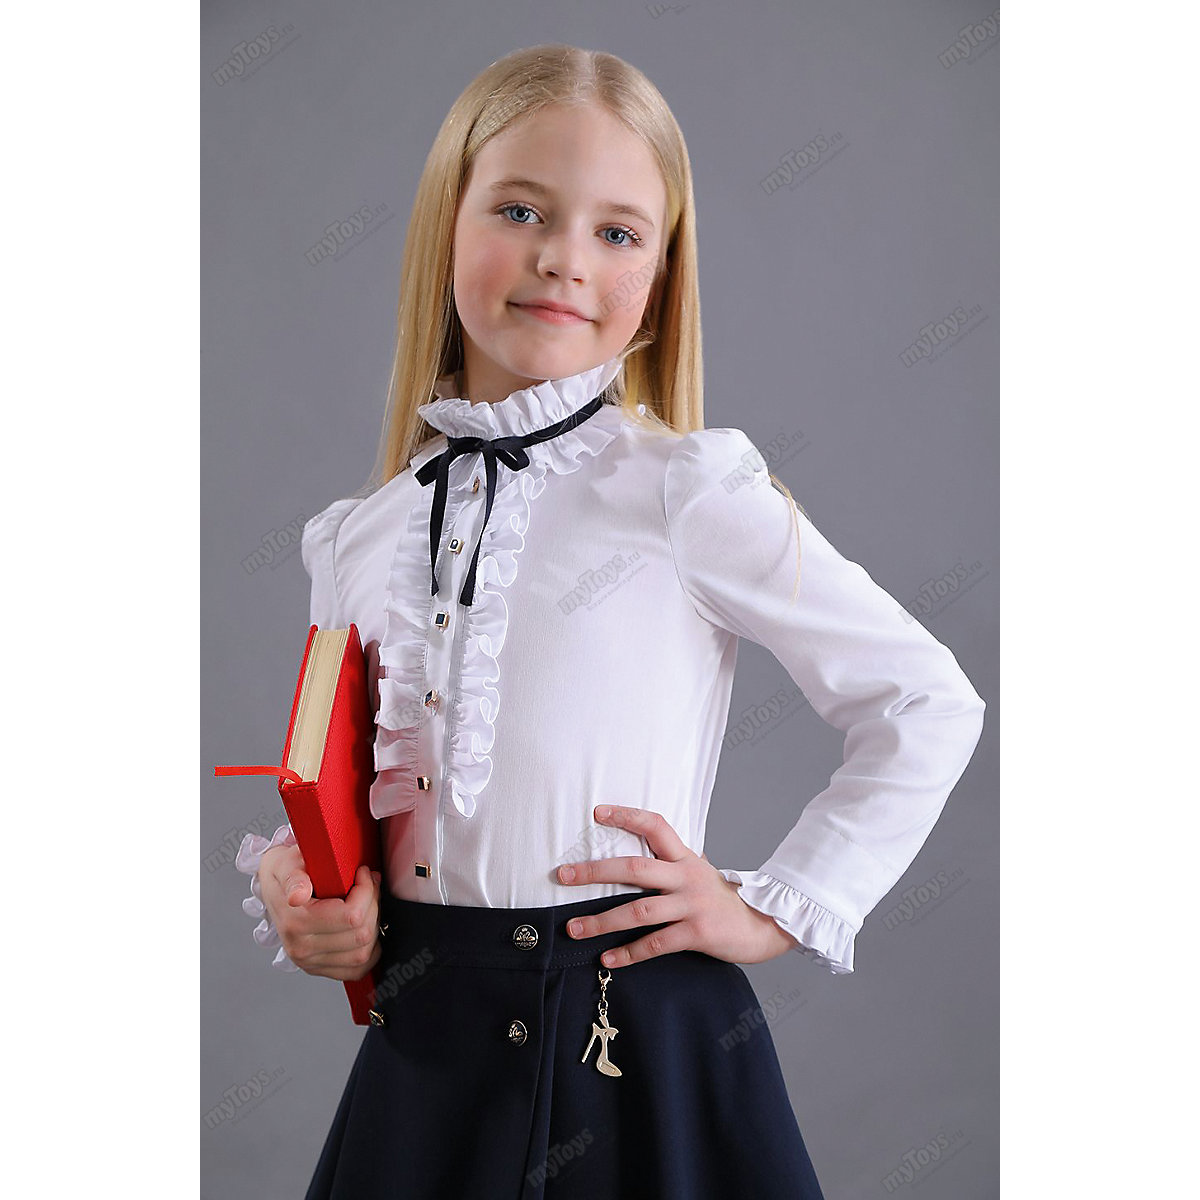 Malenkaya Lady Blouses & Shirts 11685775 blouse for girl school  clothes jacket wardrobe childrens shirt White Blue Girls Turtleneck malenkaya lady blouses